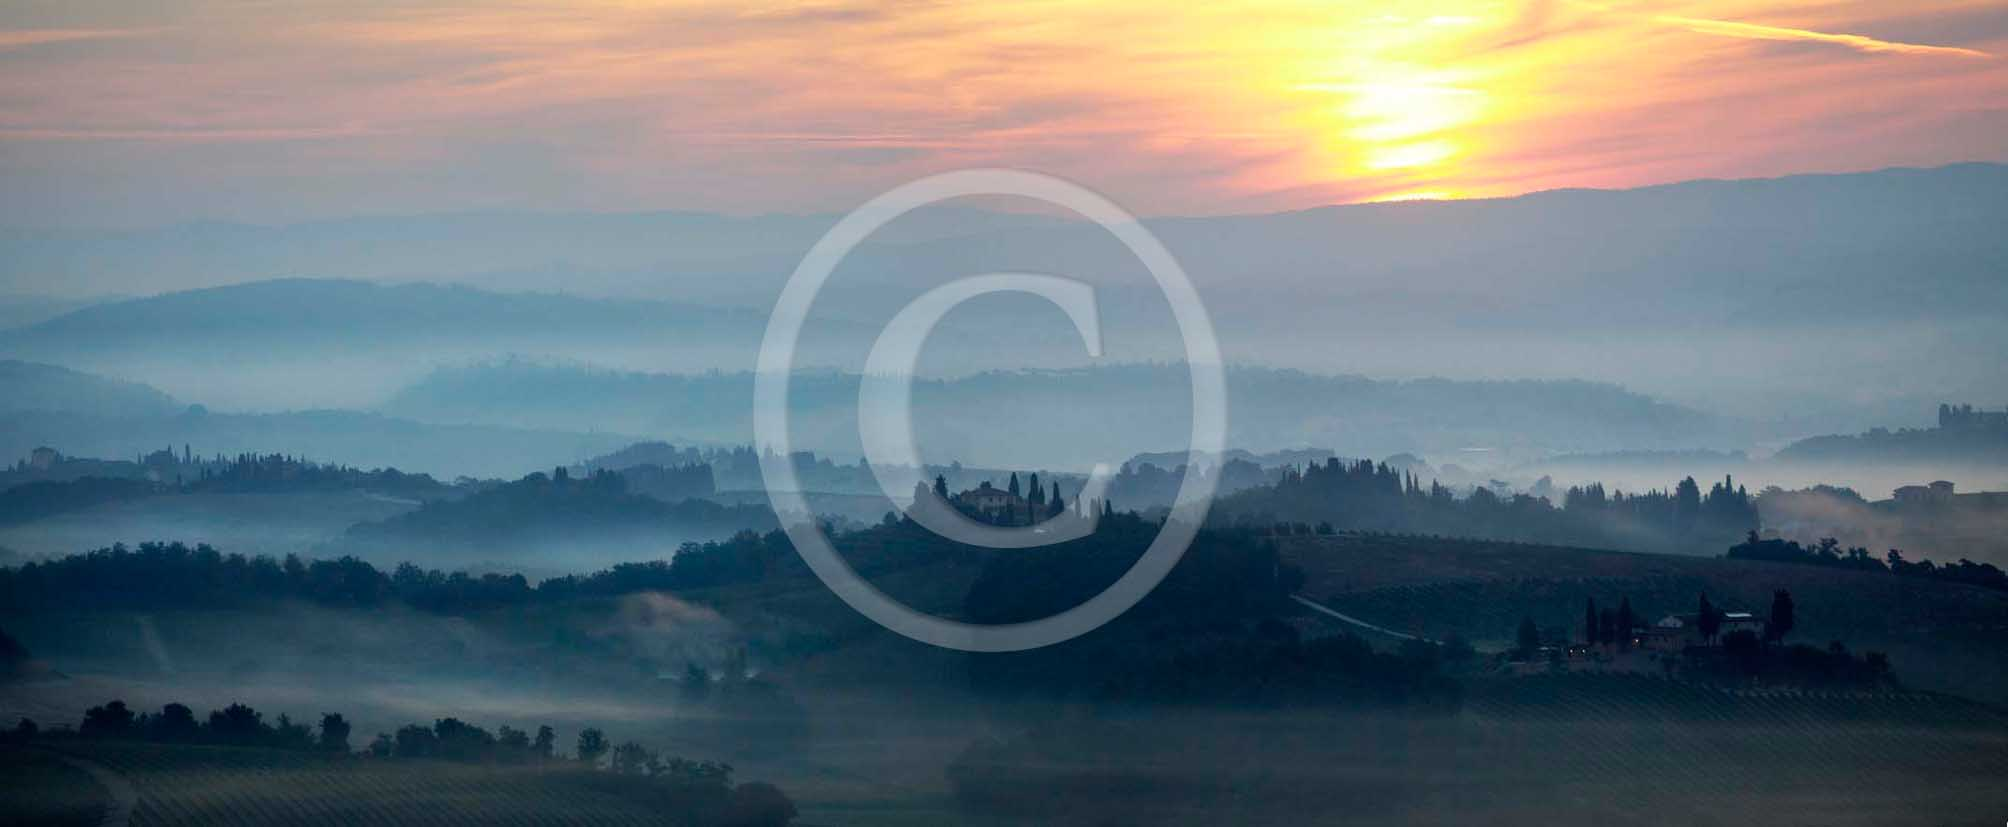 2011 - Panoramic view of cipress and tuscan skyline at sunset in Orcia valley.